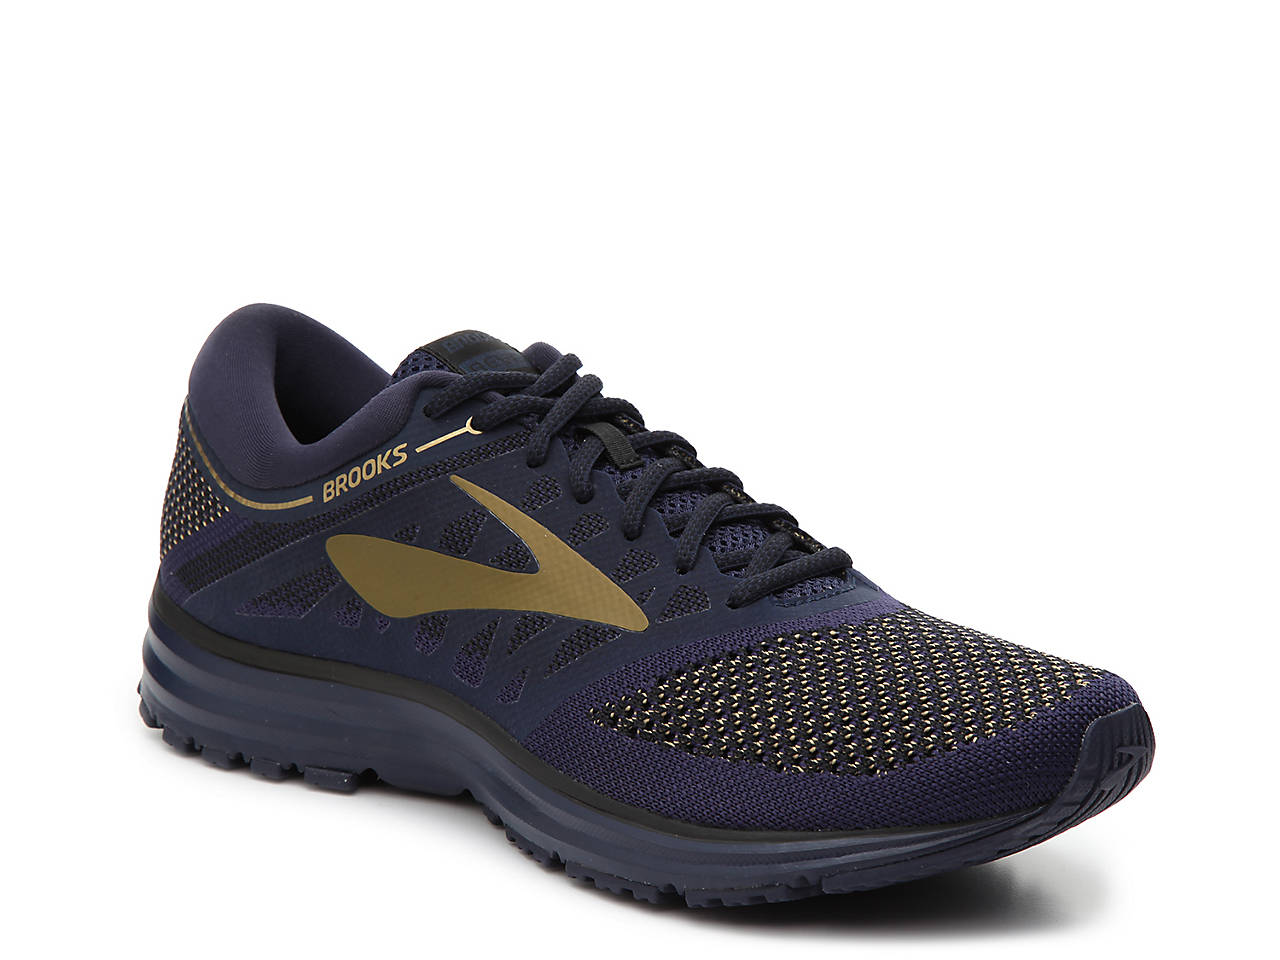 18c9d23873a Brooks Revel Running Shoe - Men s Men s Shoes